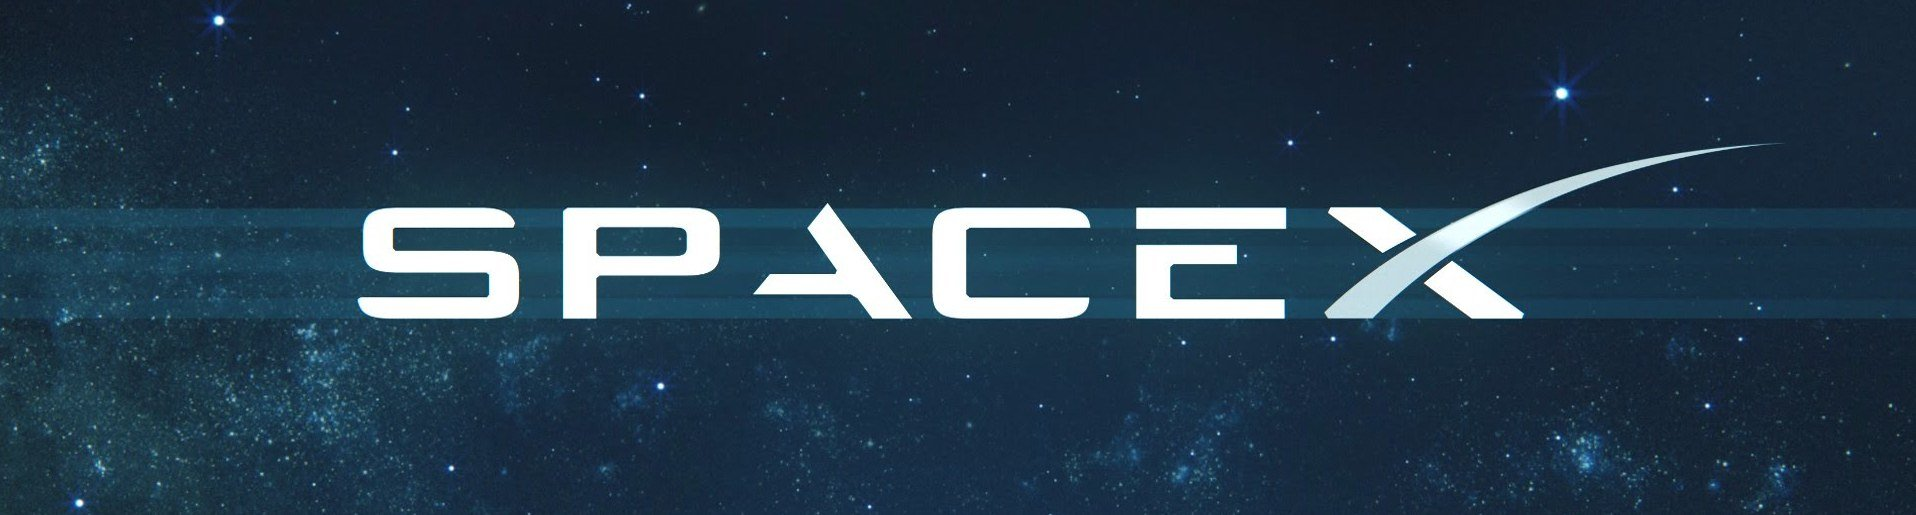 SpaceX banner